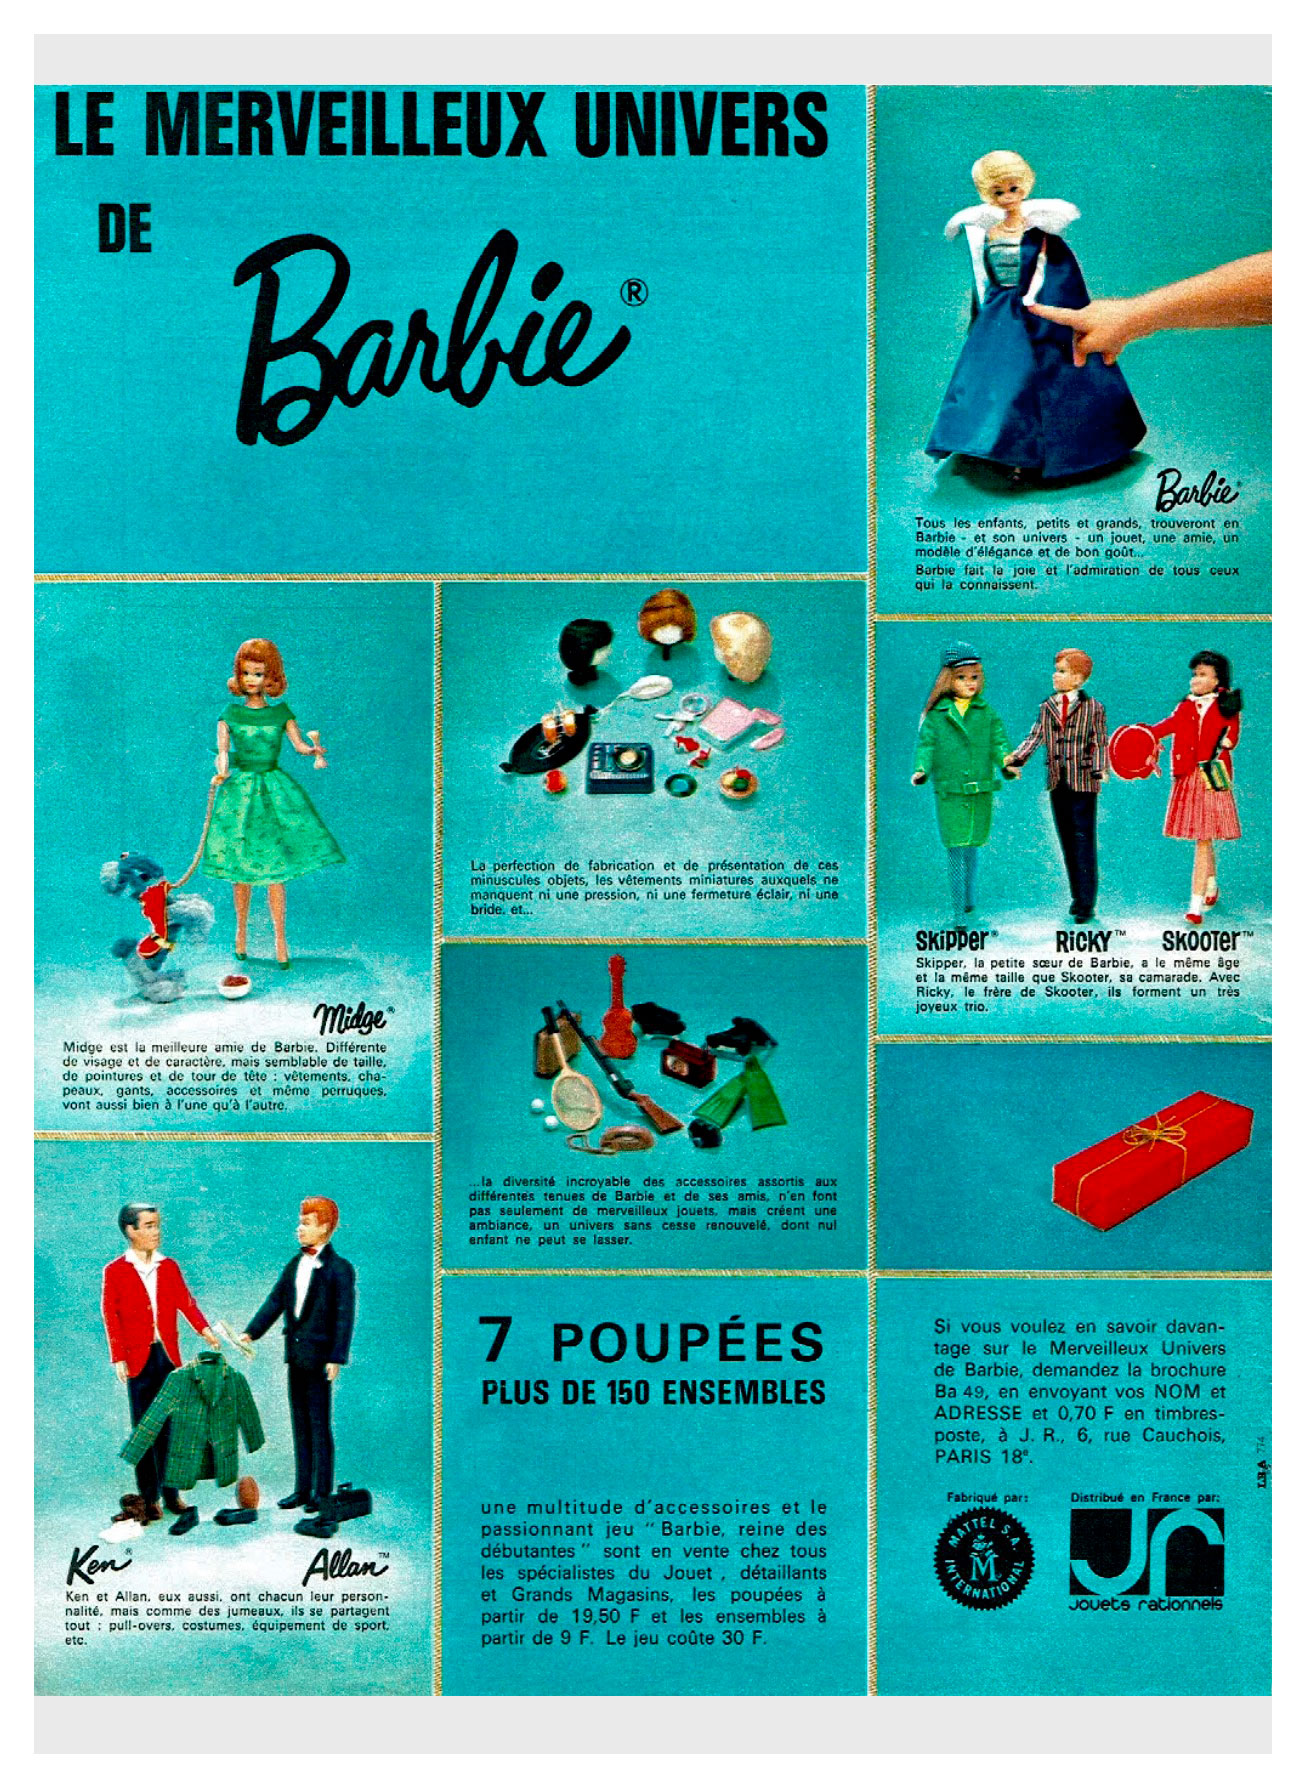 1965 French Jouets rationnels advertisement